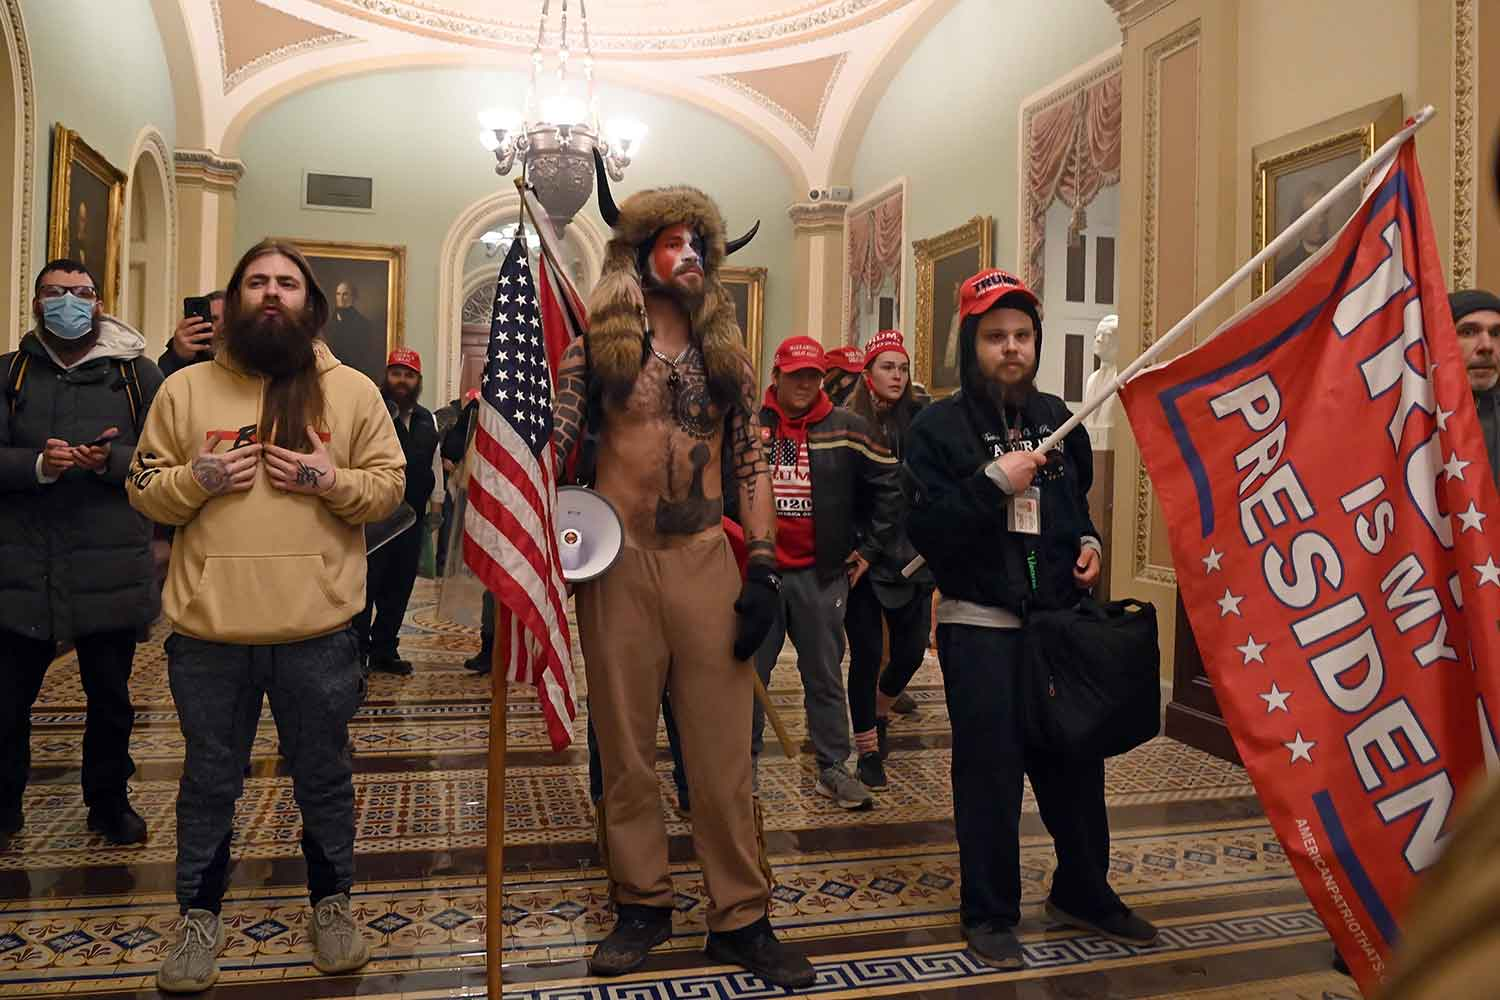 The invasion and desecration on January 6th of the seat of American democracy by a crowd incited by President Donald Trump